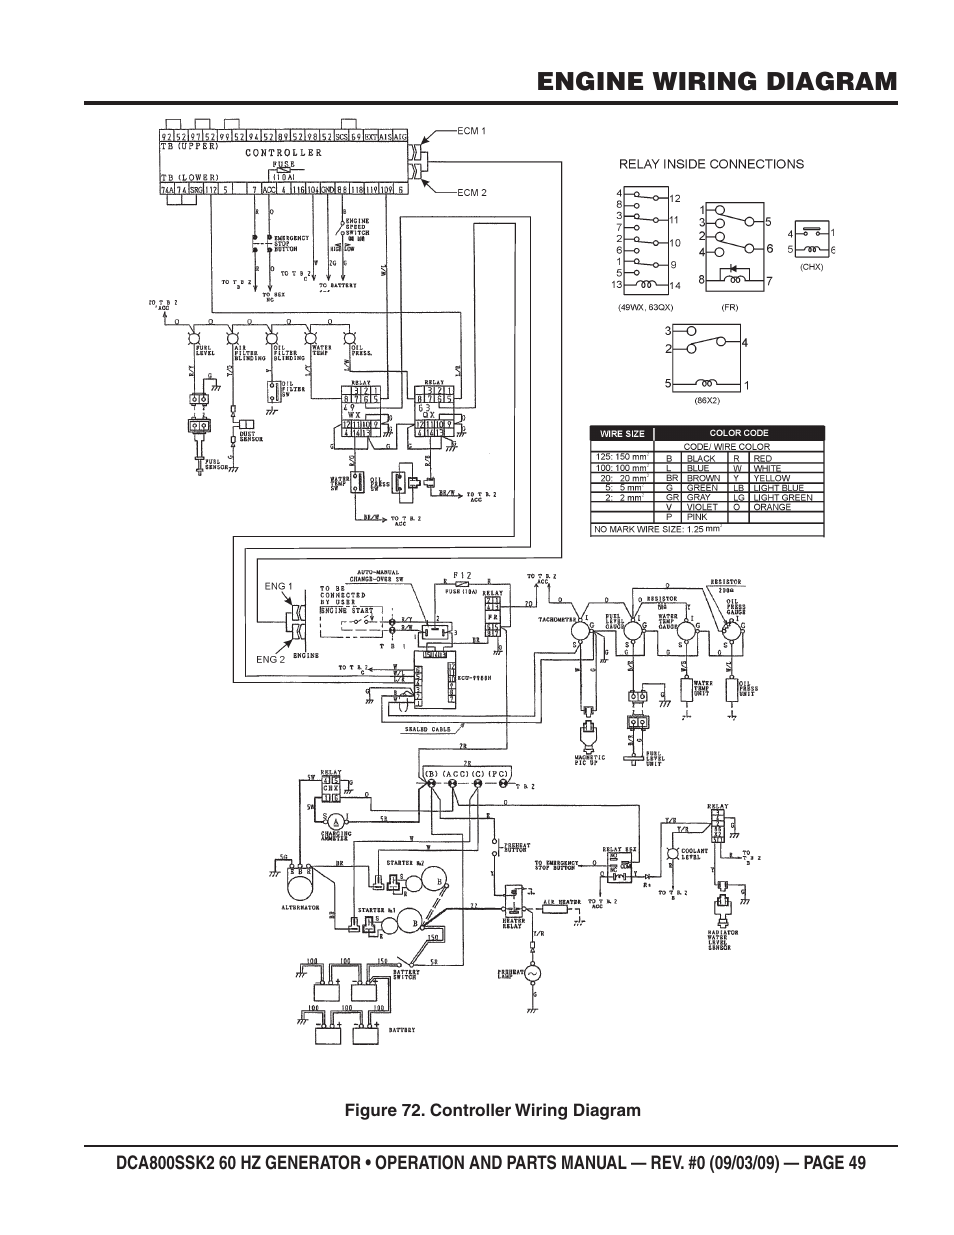 Fiat Allis Wiring Diagram in addition 3o53n John Deere Lawn Tractor 120 Cutting Grass likewise Hyster G108 E2 00 3 20xm Forklift Parts Manual Download 2 likewise John Deere 455 Lawn Tractor Wiring Diagram also John Deere L120 Lawn Tractor Transmission 578356. on john deere 170 electrical diagram